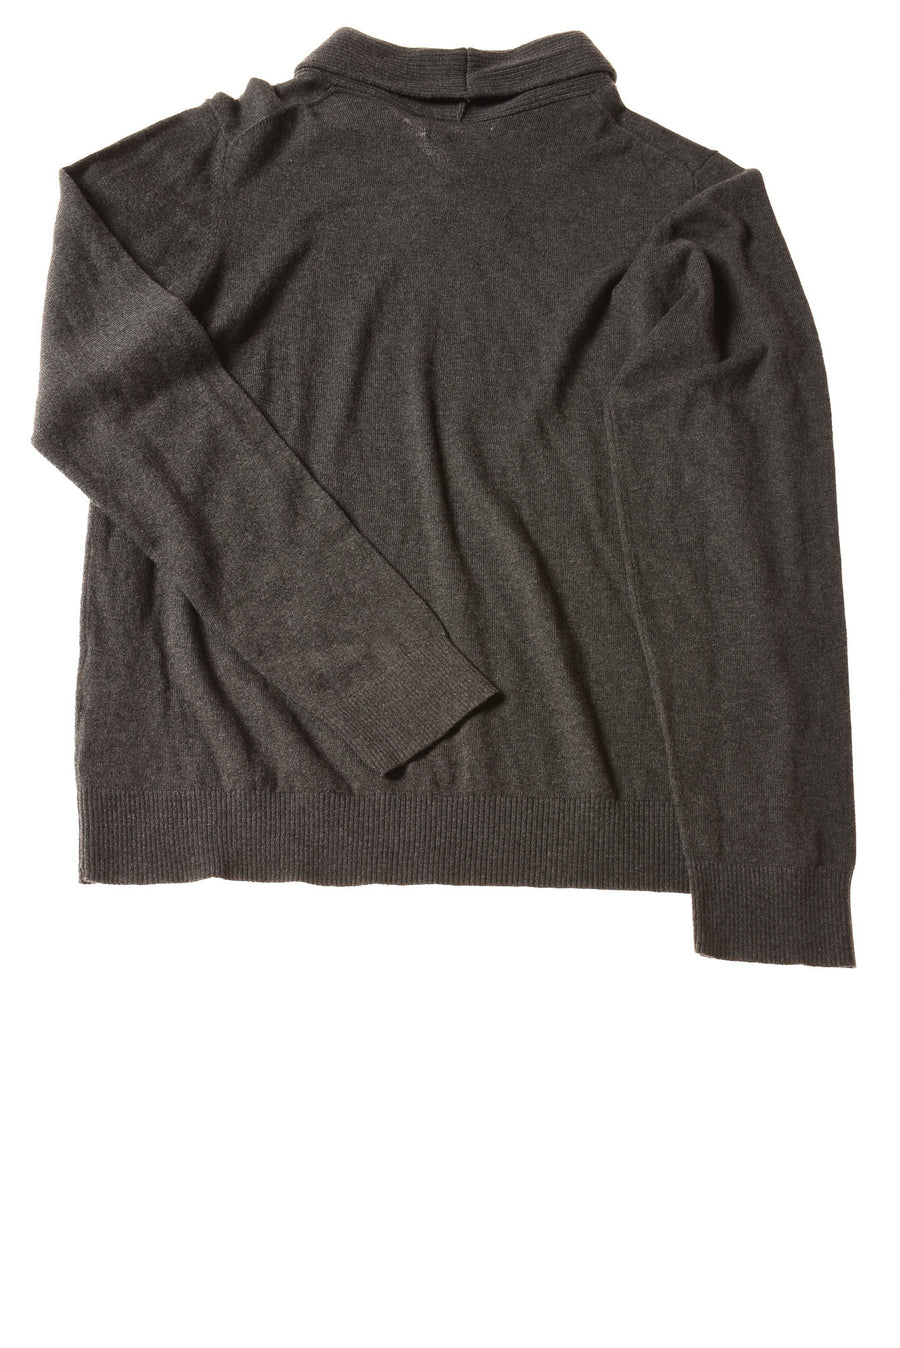 Women's Sweater By Marc Anthony